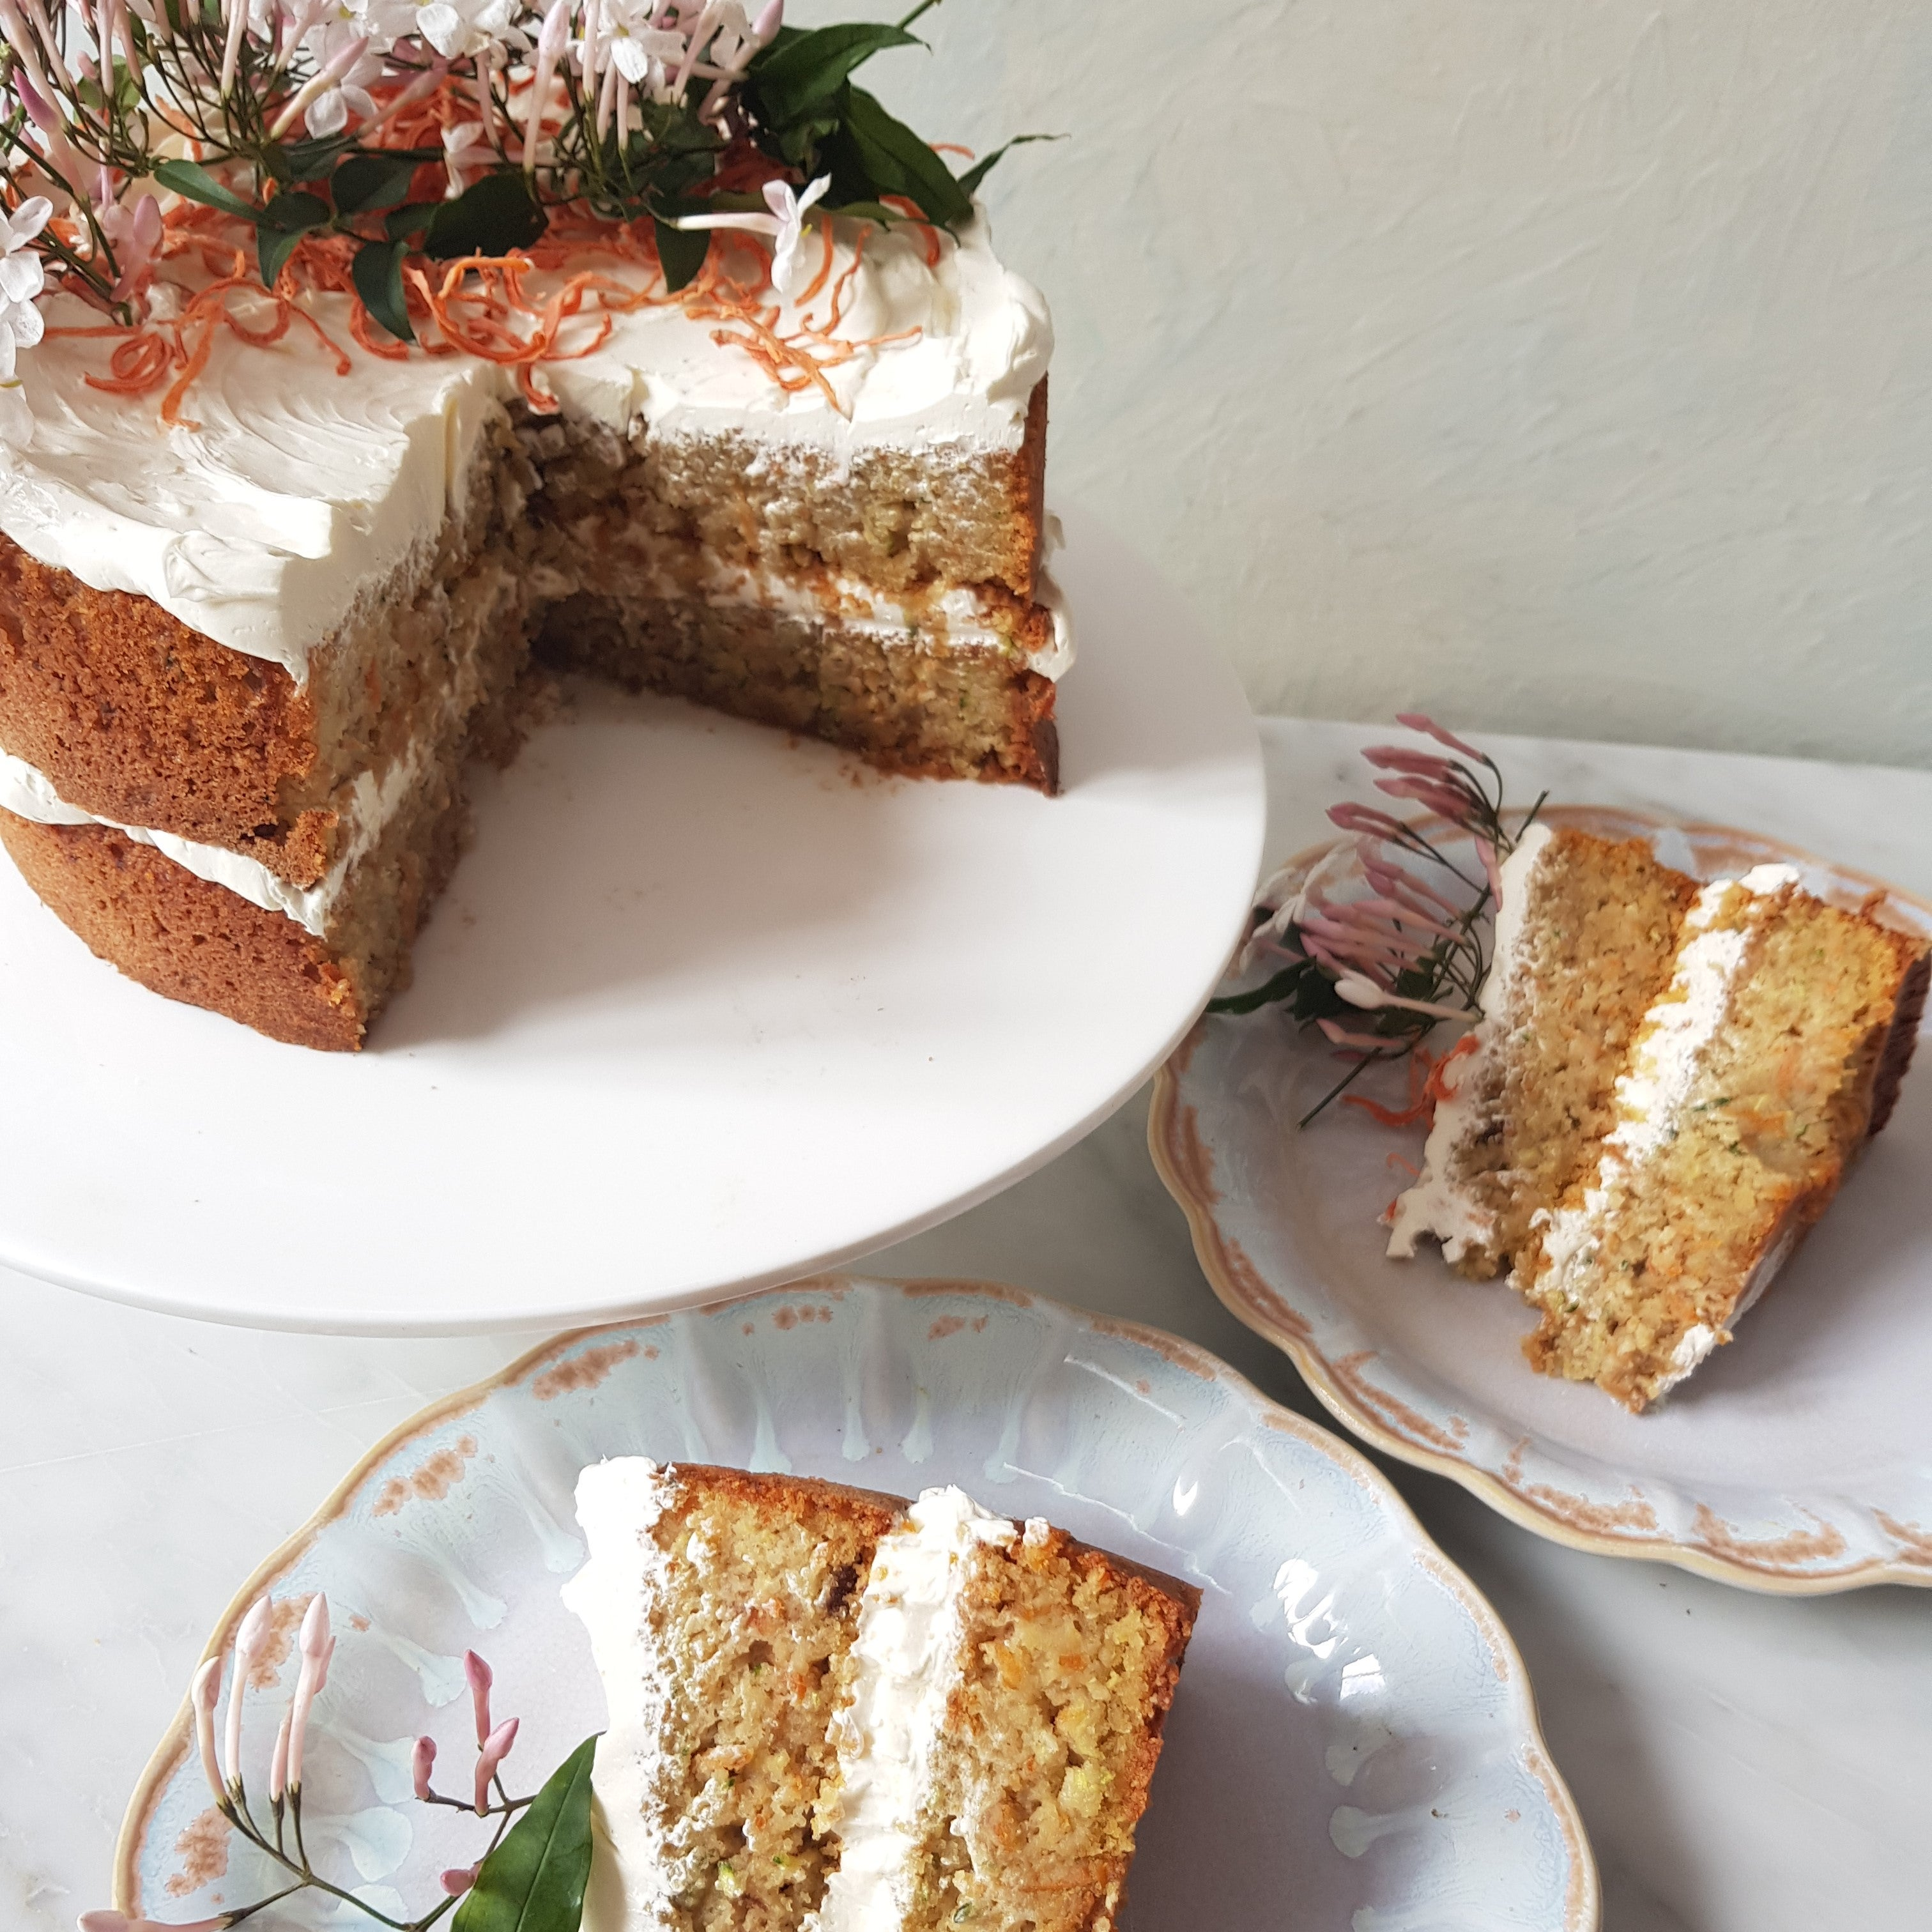 lily-Vanilli-Carrot-courgette-Gluten-Free-Cake.jpg